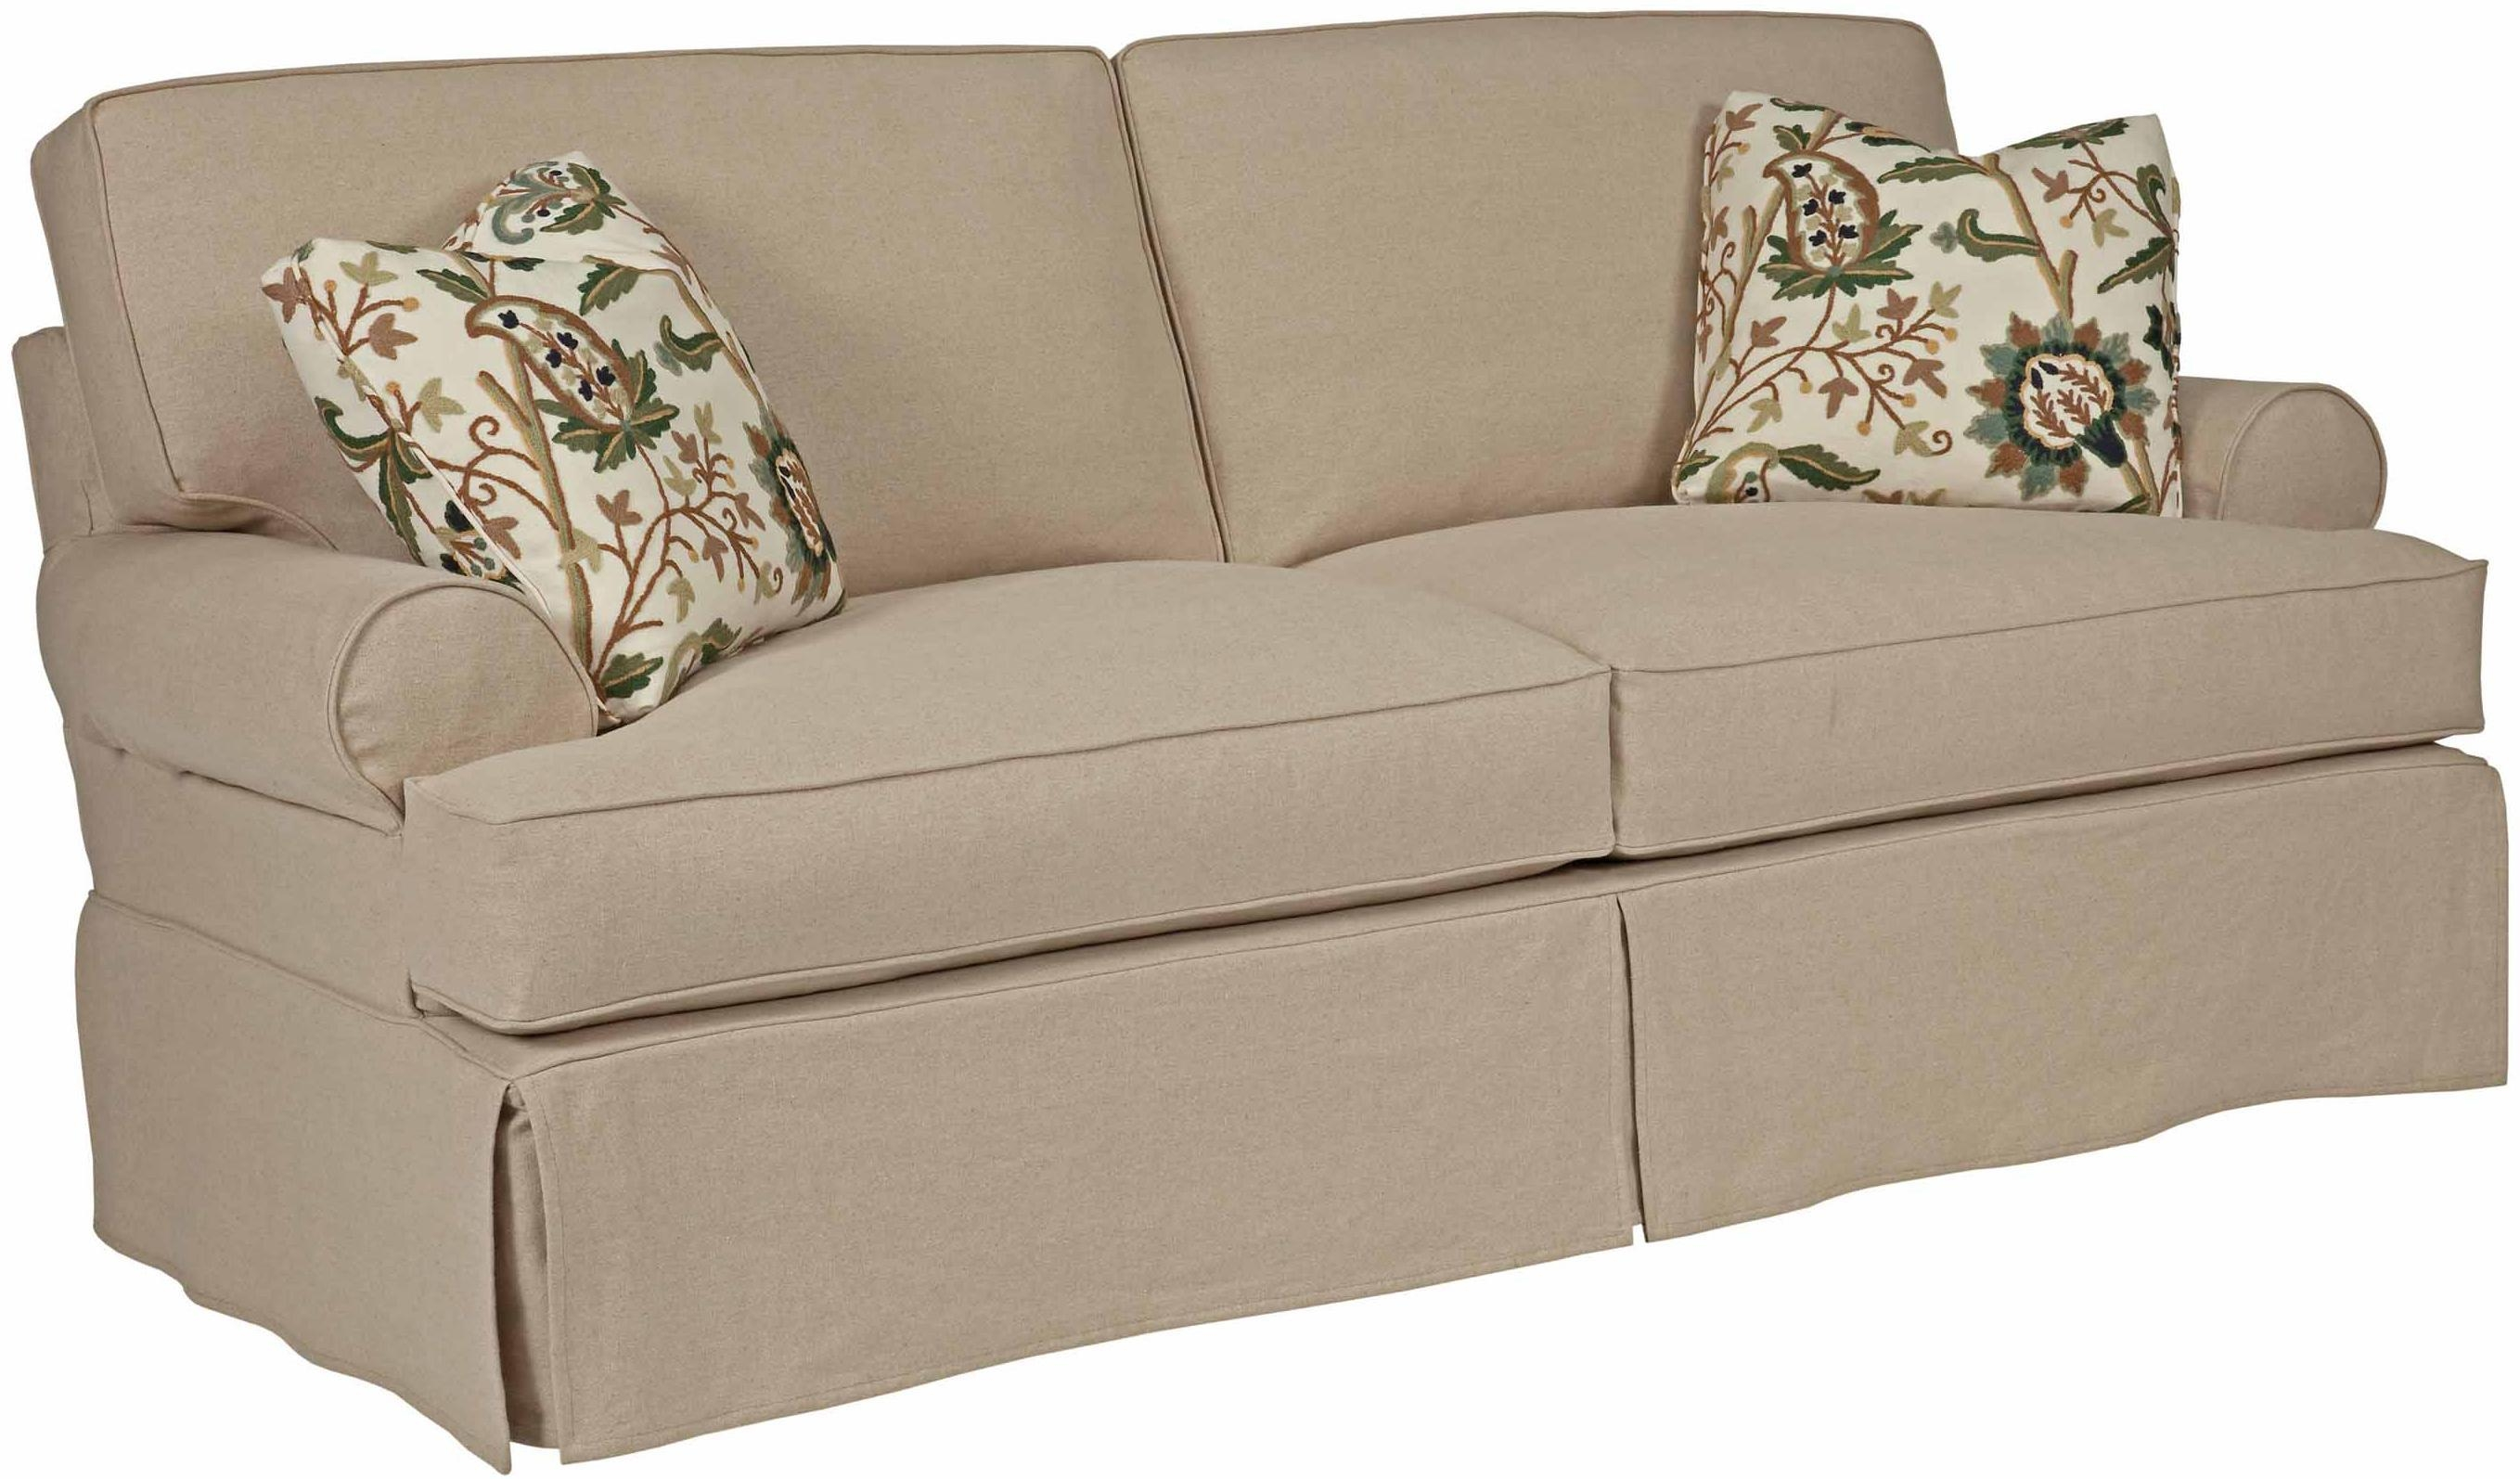 2 Piece T Cushion Sofa Slipcover – Sofas Throughout 2 Piece Sofa Covers (View 22 of 27)